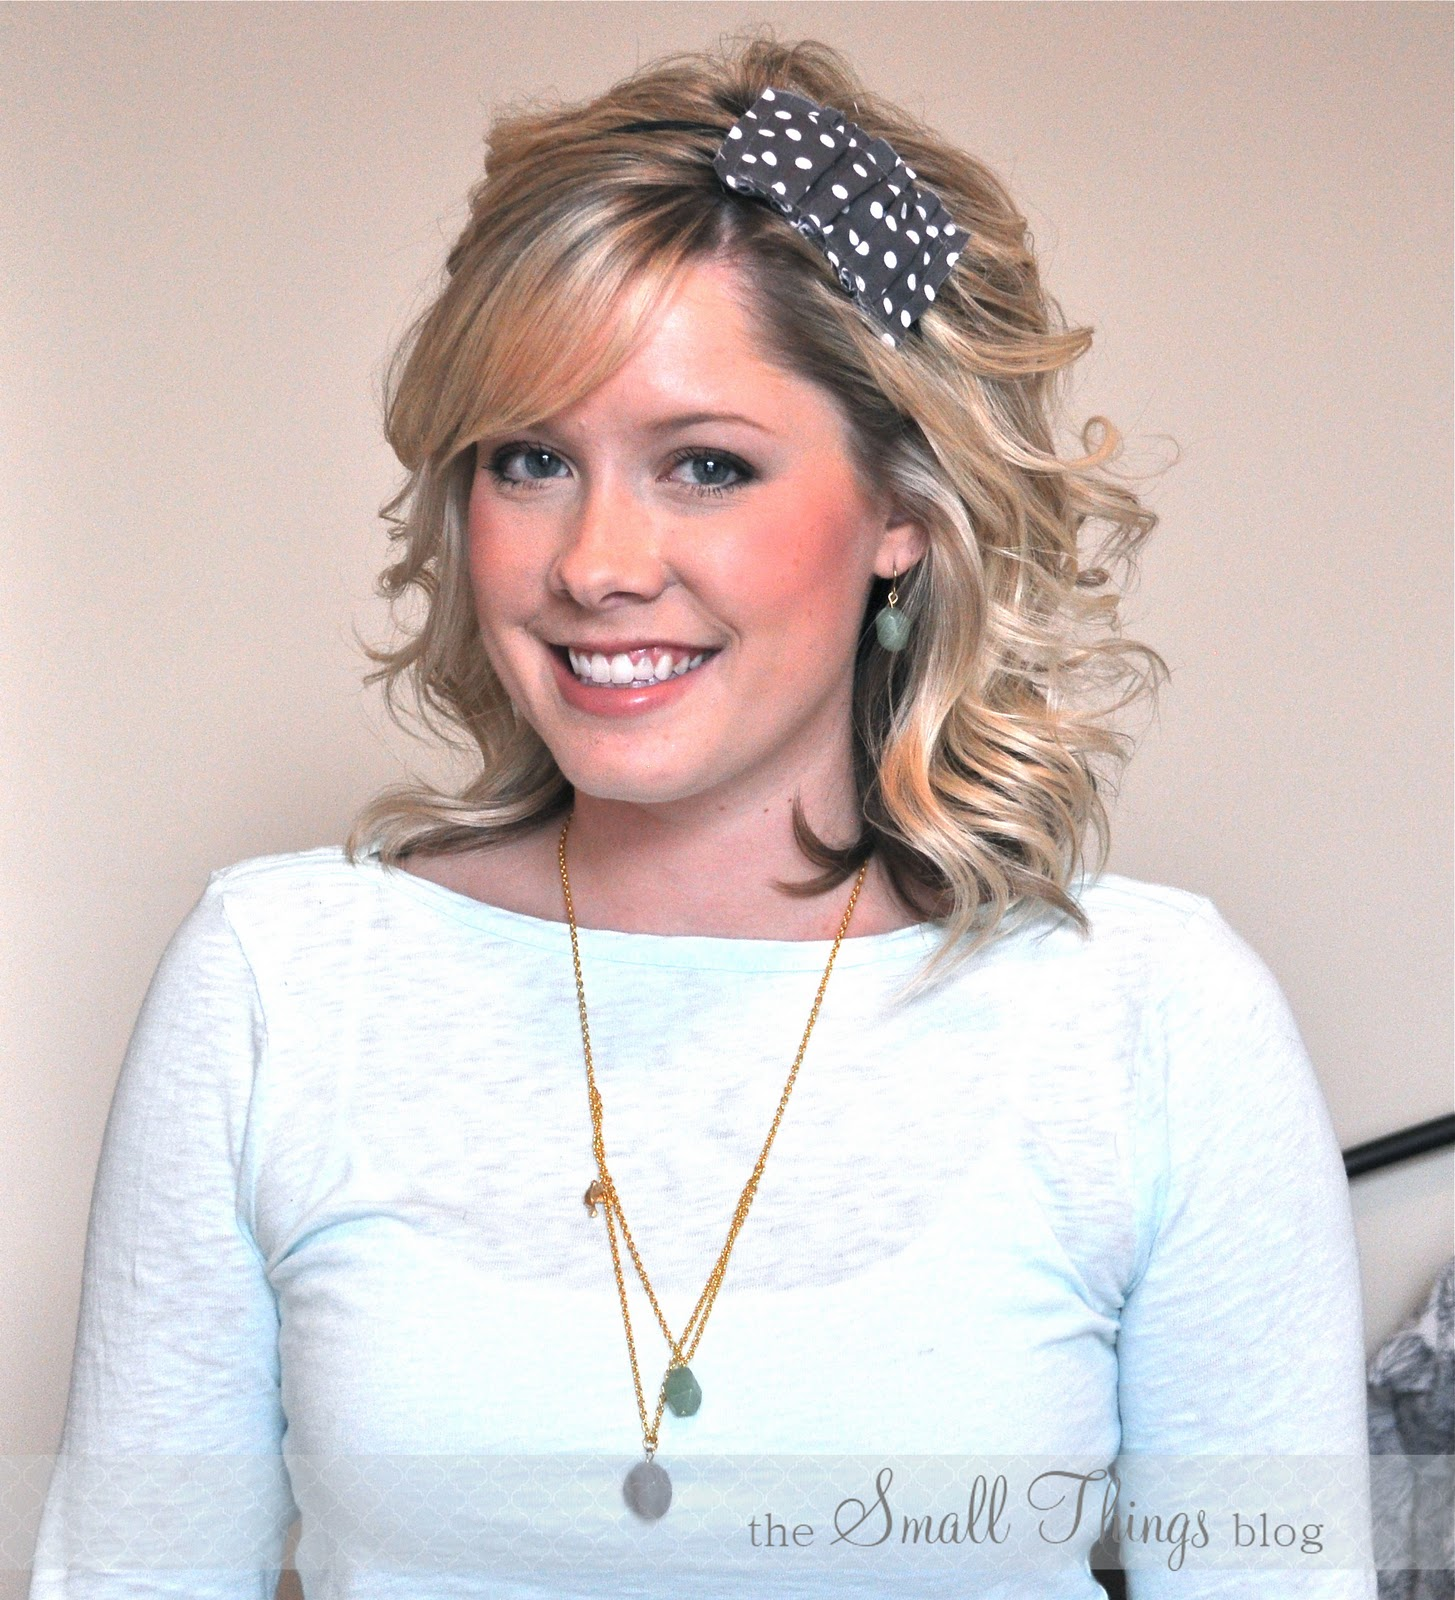 How To Wear A Headband The Small Things Blog